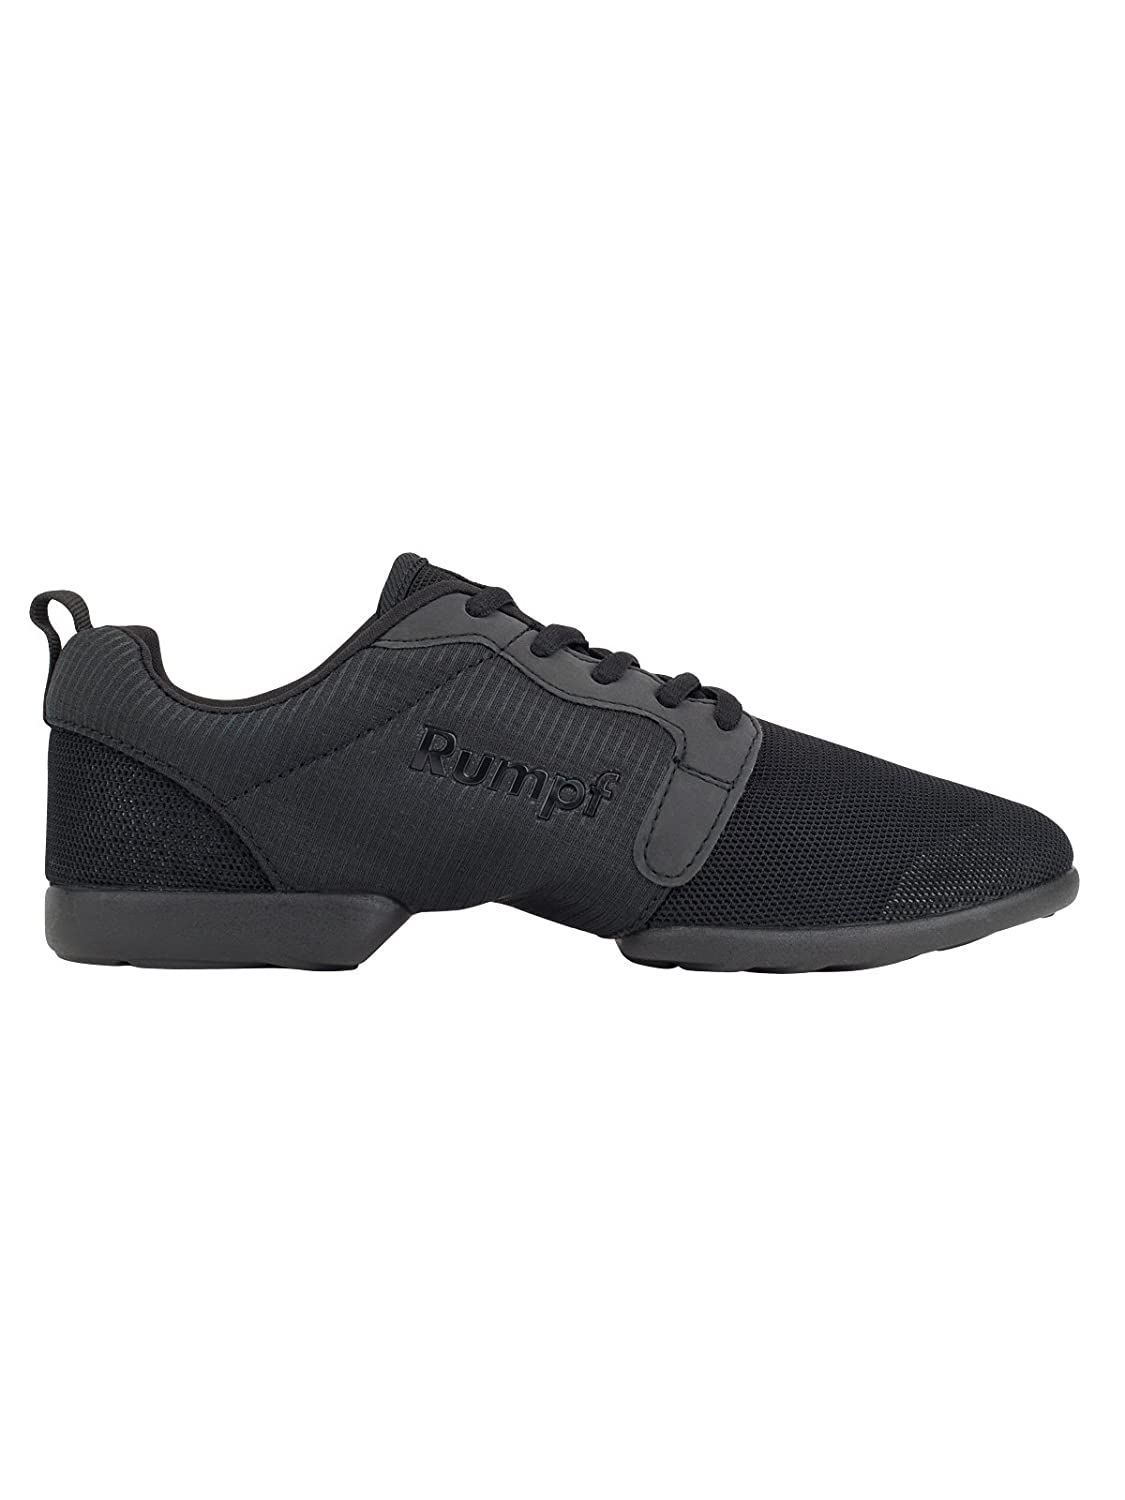 Rumpf Mojo Dance Sneaker Black PU Split Sole Men Women Lightweight Breathable Professional Sneaker